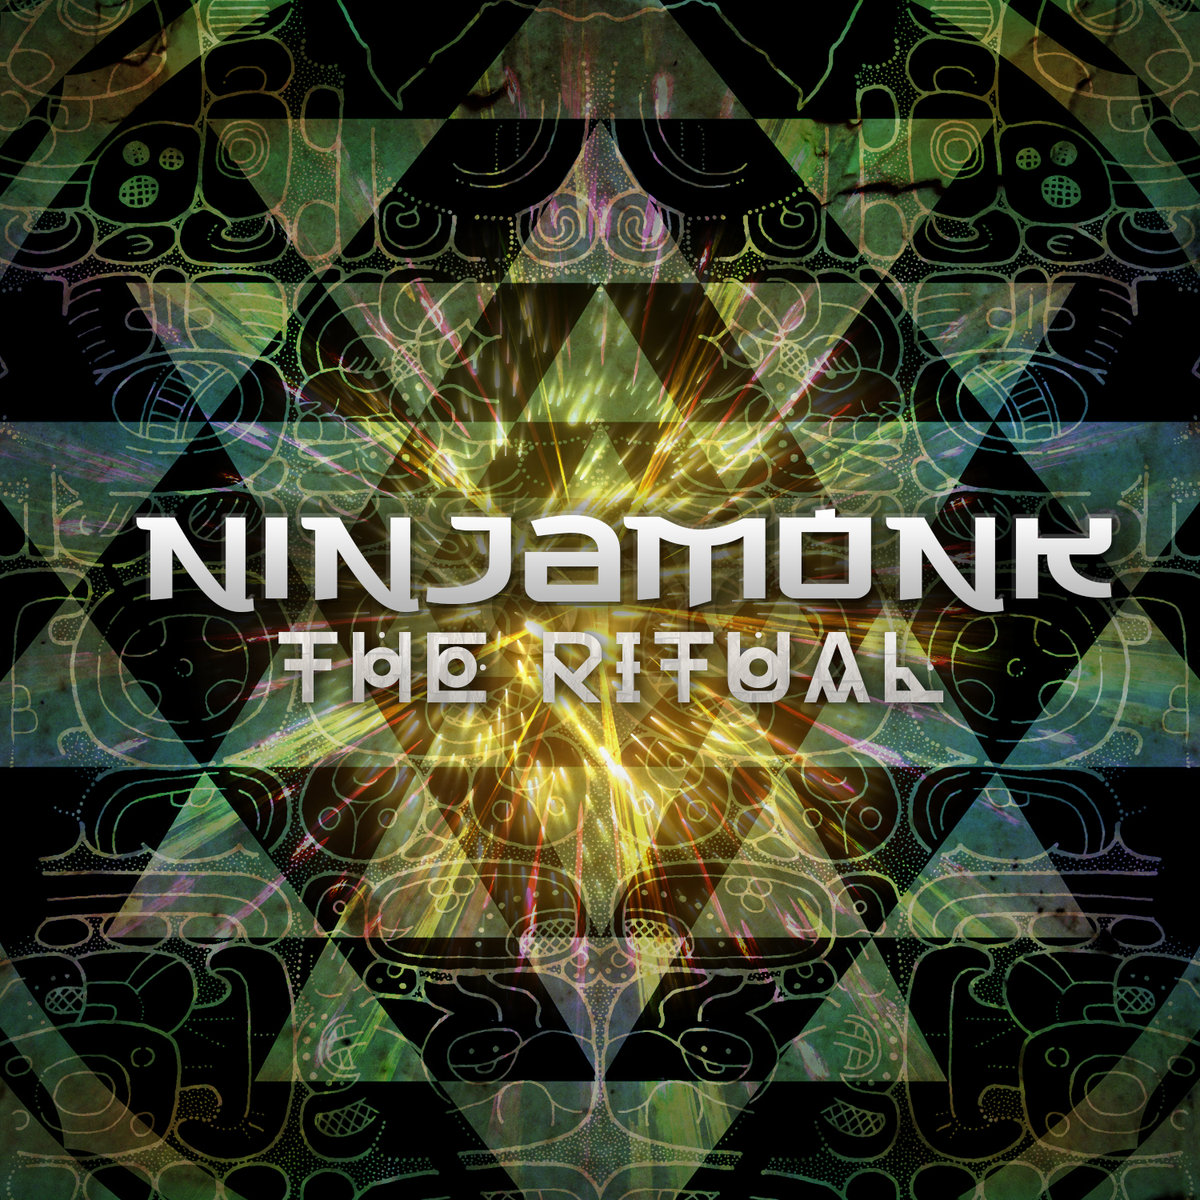 Ninjamonk - Ancestors Tale @ 'The Ritual' album (bass, chill)